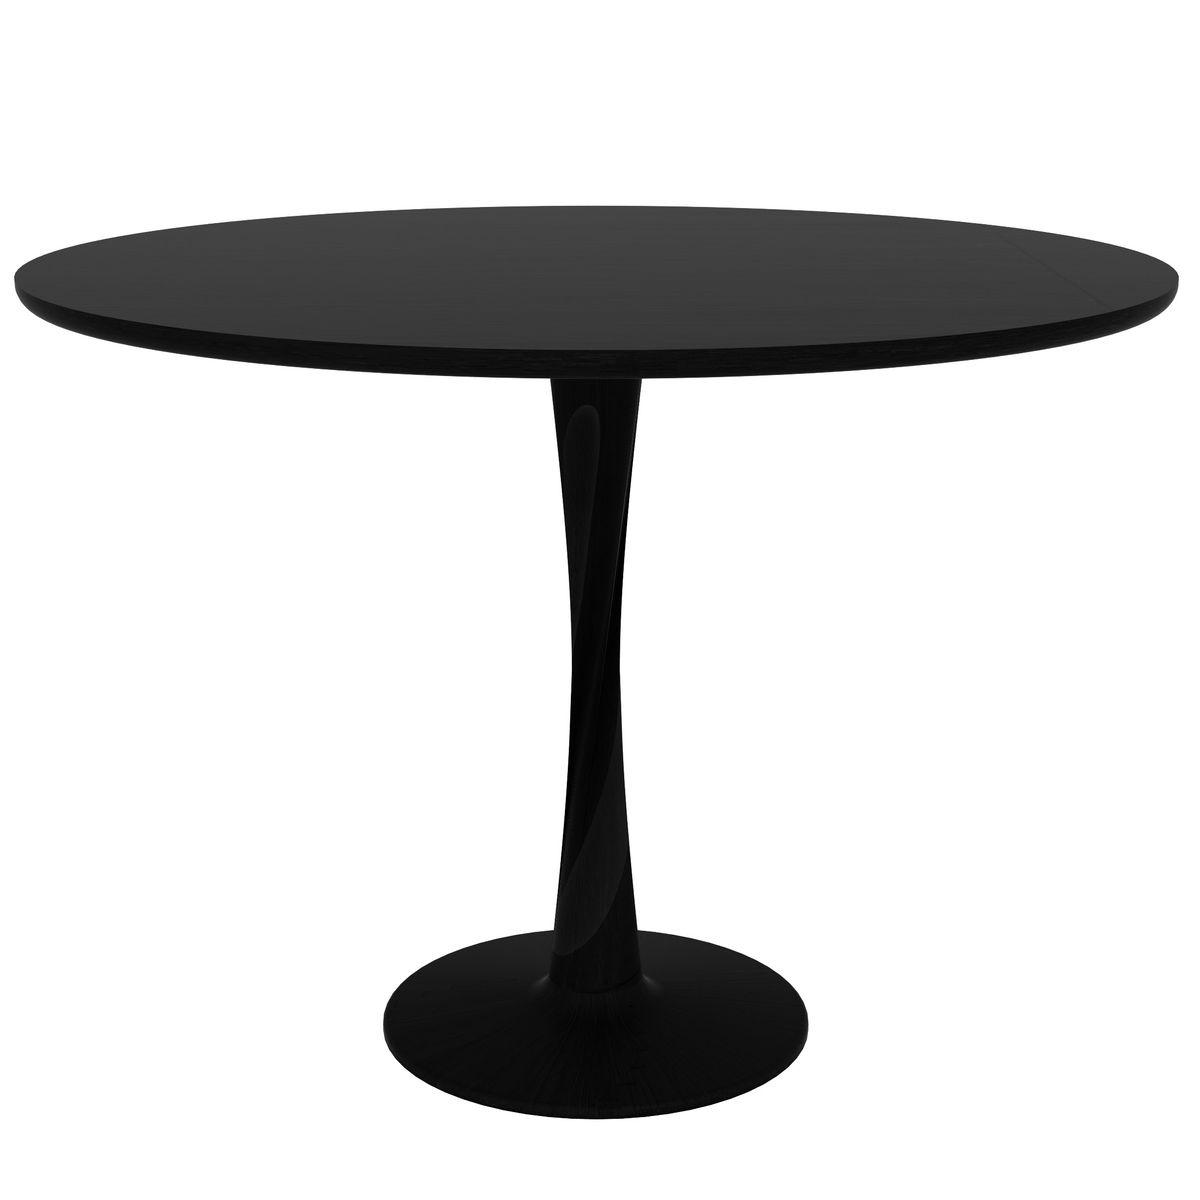 Table ronde TORSION Ethnicraft chêne teinté noir